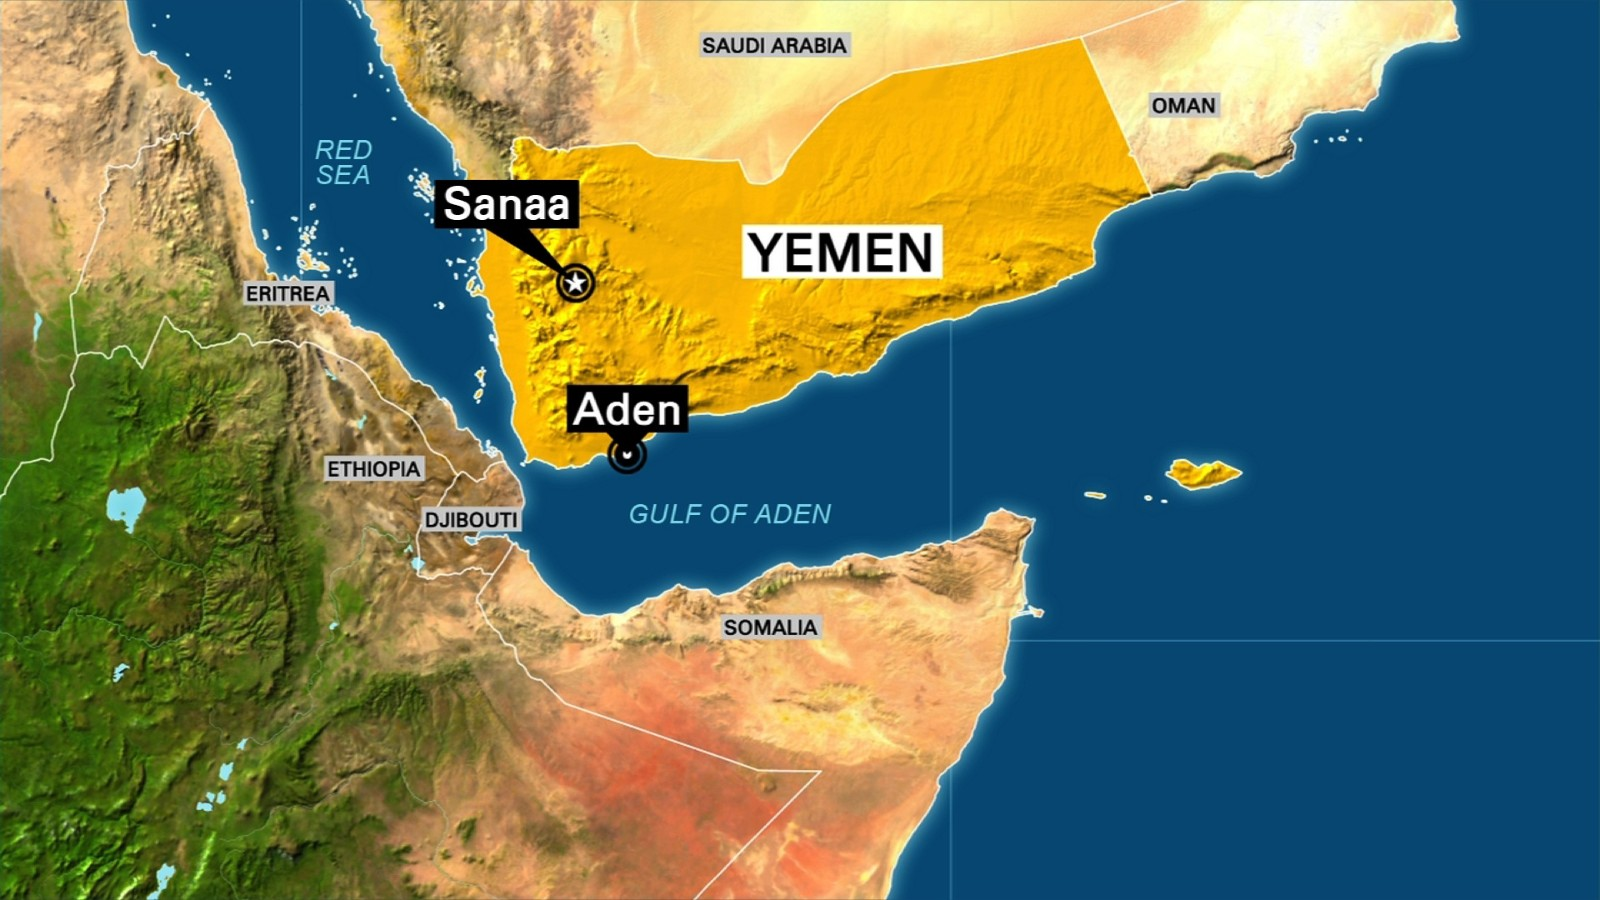 Ops) GULF OF ADEN- US Navy seizes hundreds of weapons from boat in ...